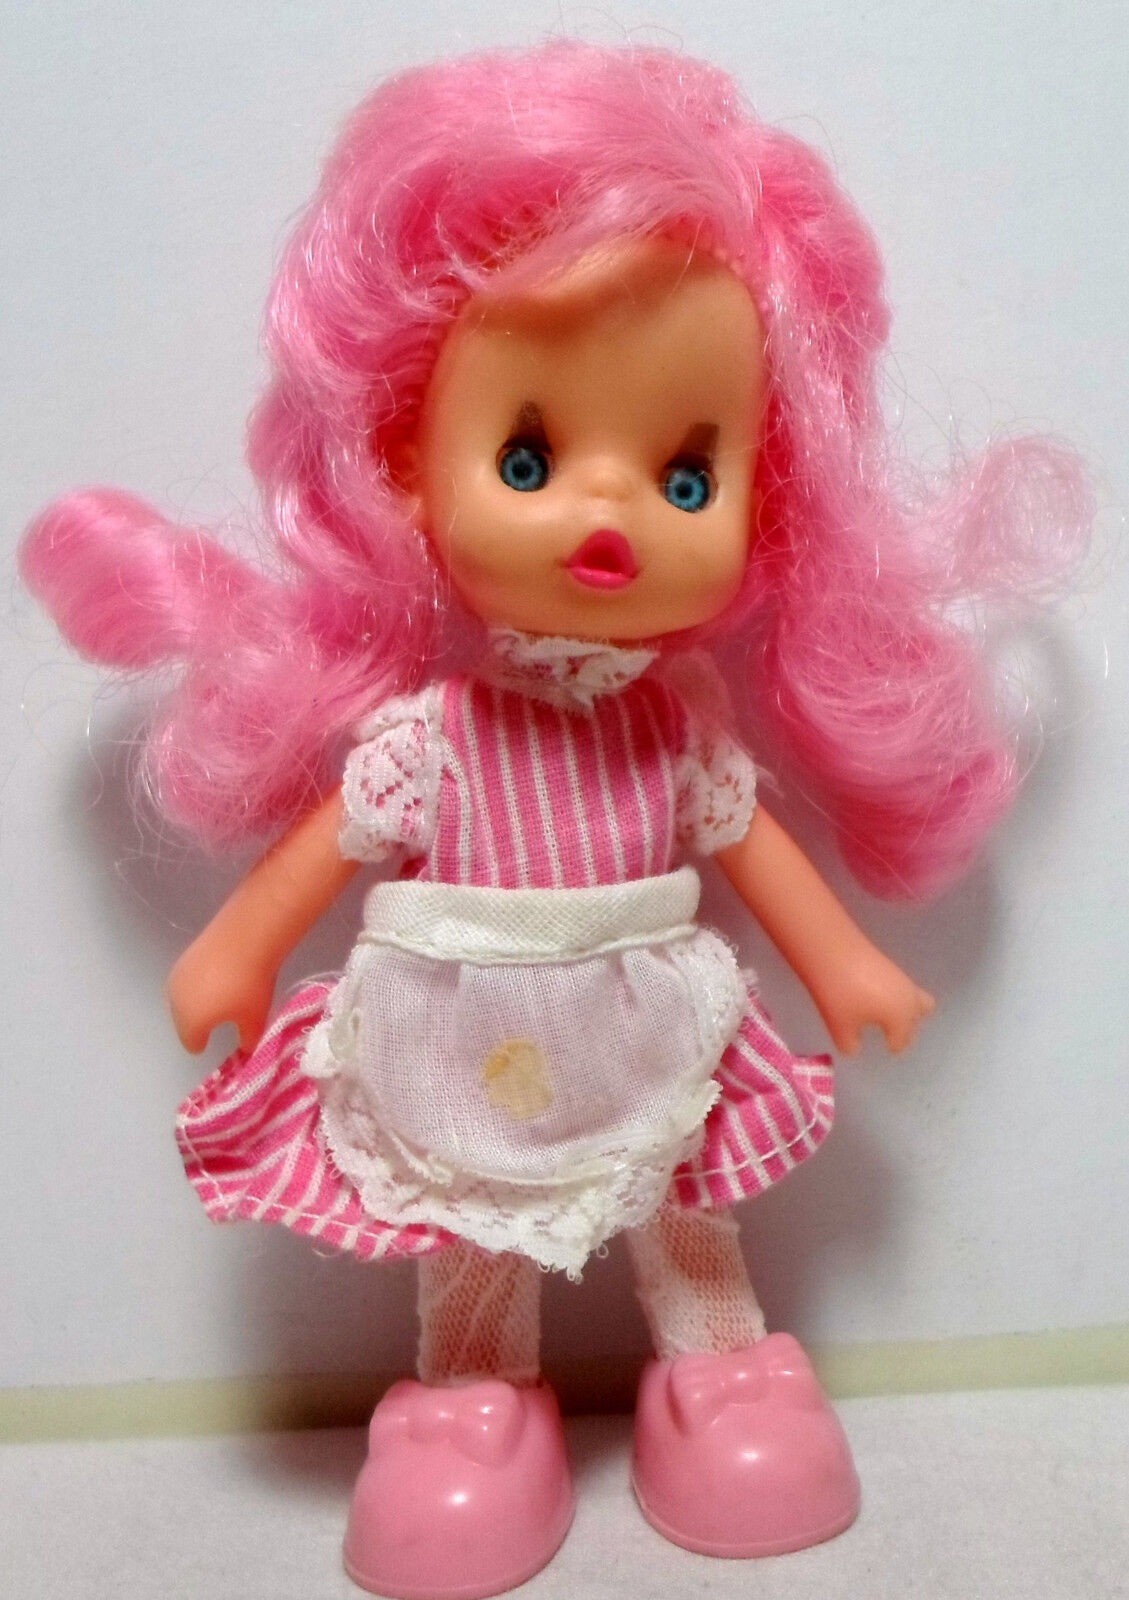 EL GRECO 80'S VTG HAPPY HAPPY SISTERS DOLL ULTRA RARE MUST HAVE MISSING HAT